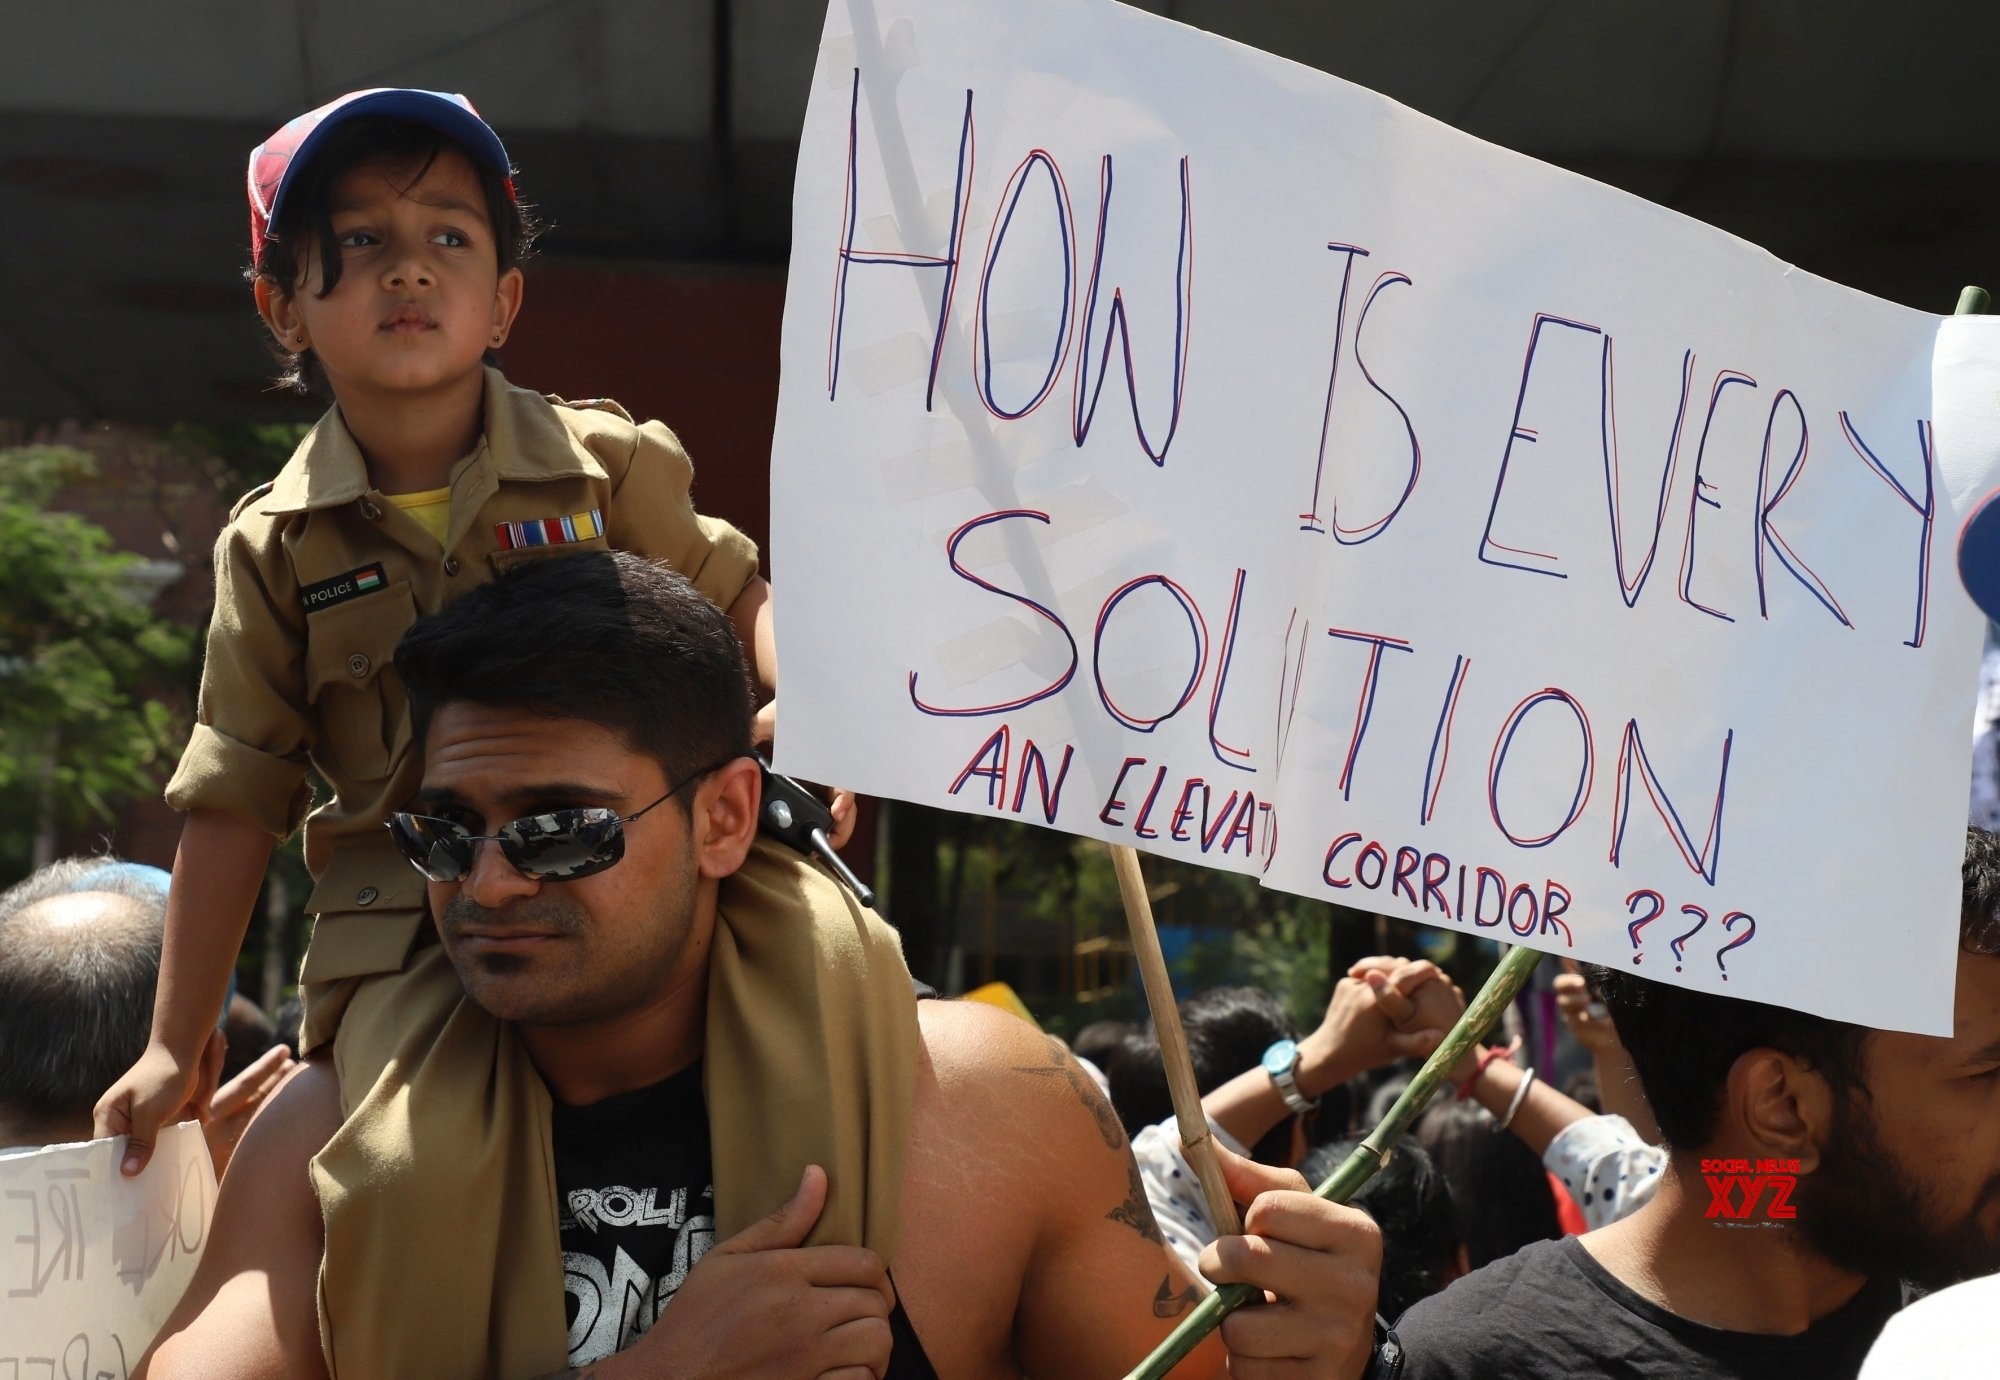 Bengaluru: People protest against Bengaluru's elevated corridor project #Gallery